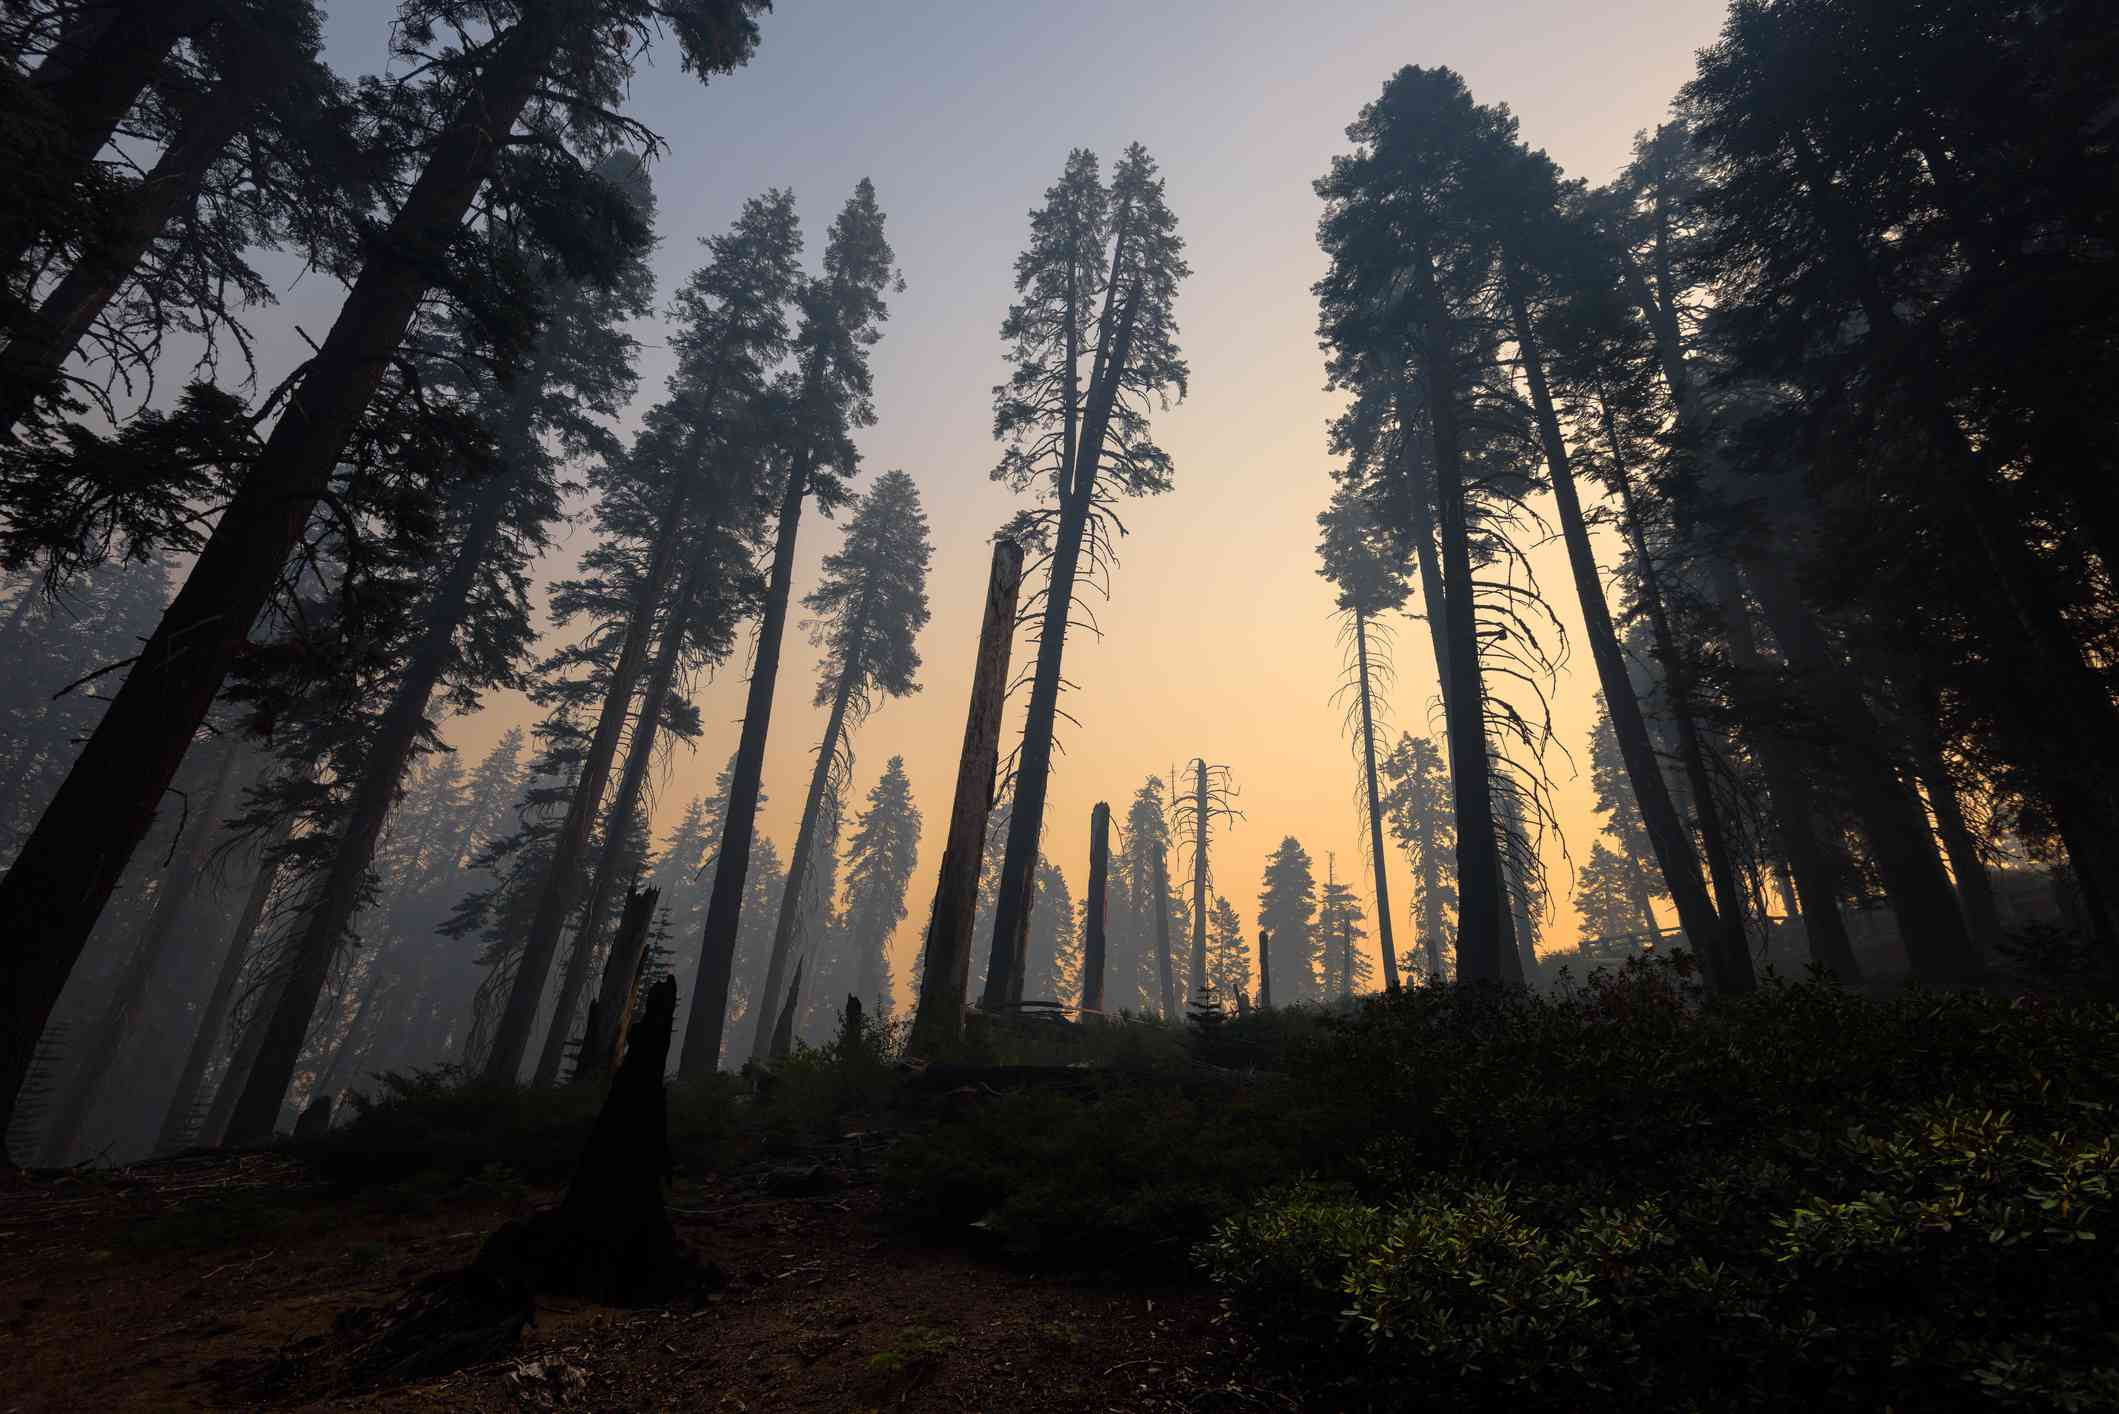 Kings Canyon National Park after a forest fire, Hume, California, America, USA